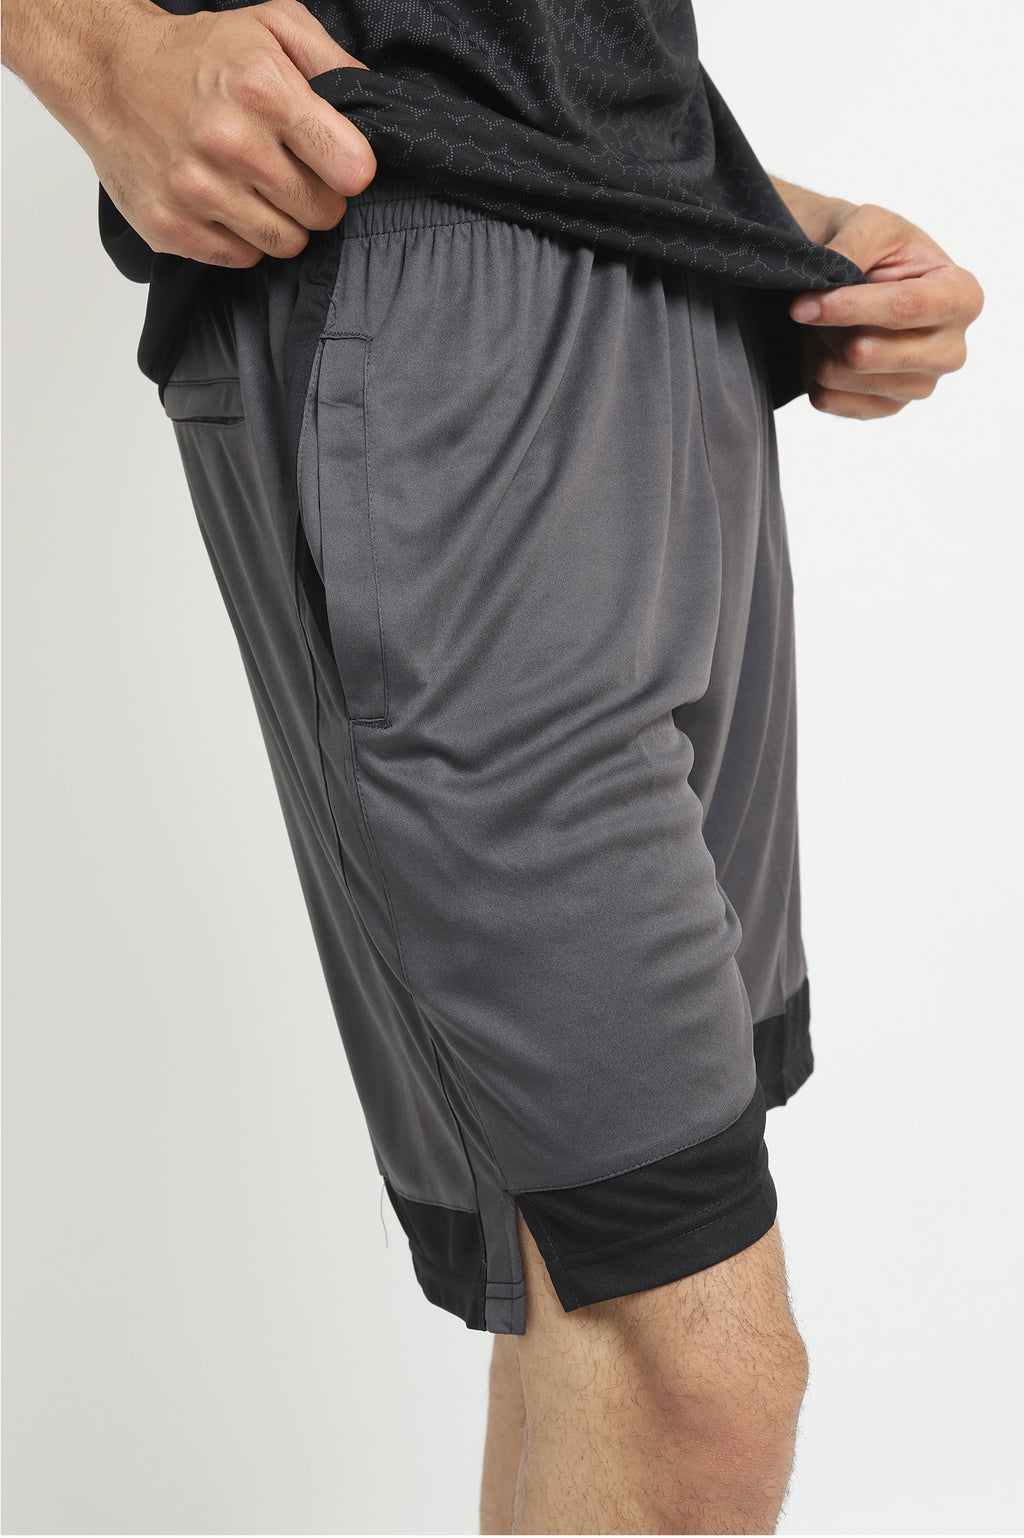 ACTIVE COLOURBLOCK SHORTS -GREY/BLACK